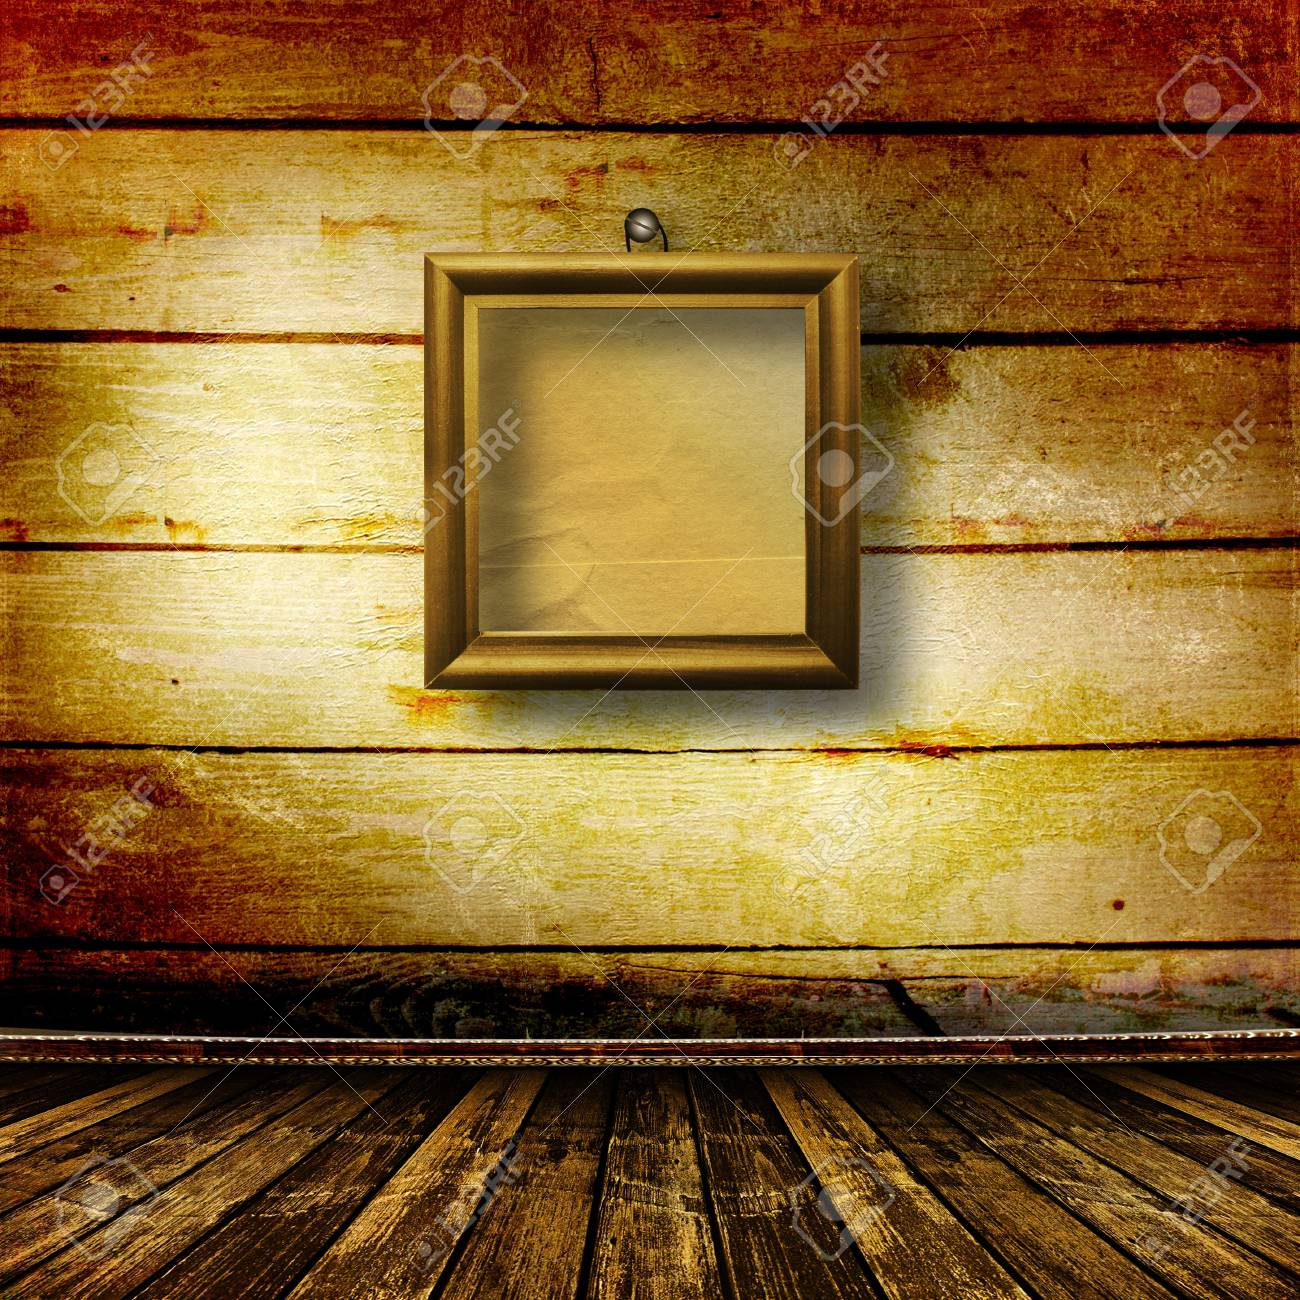 Old room, grunge  interior with frames in style baroque Stock Photo - 6775874